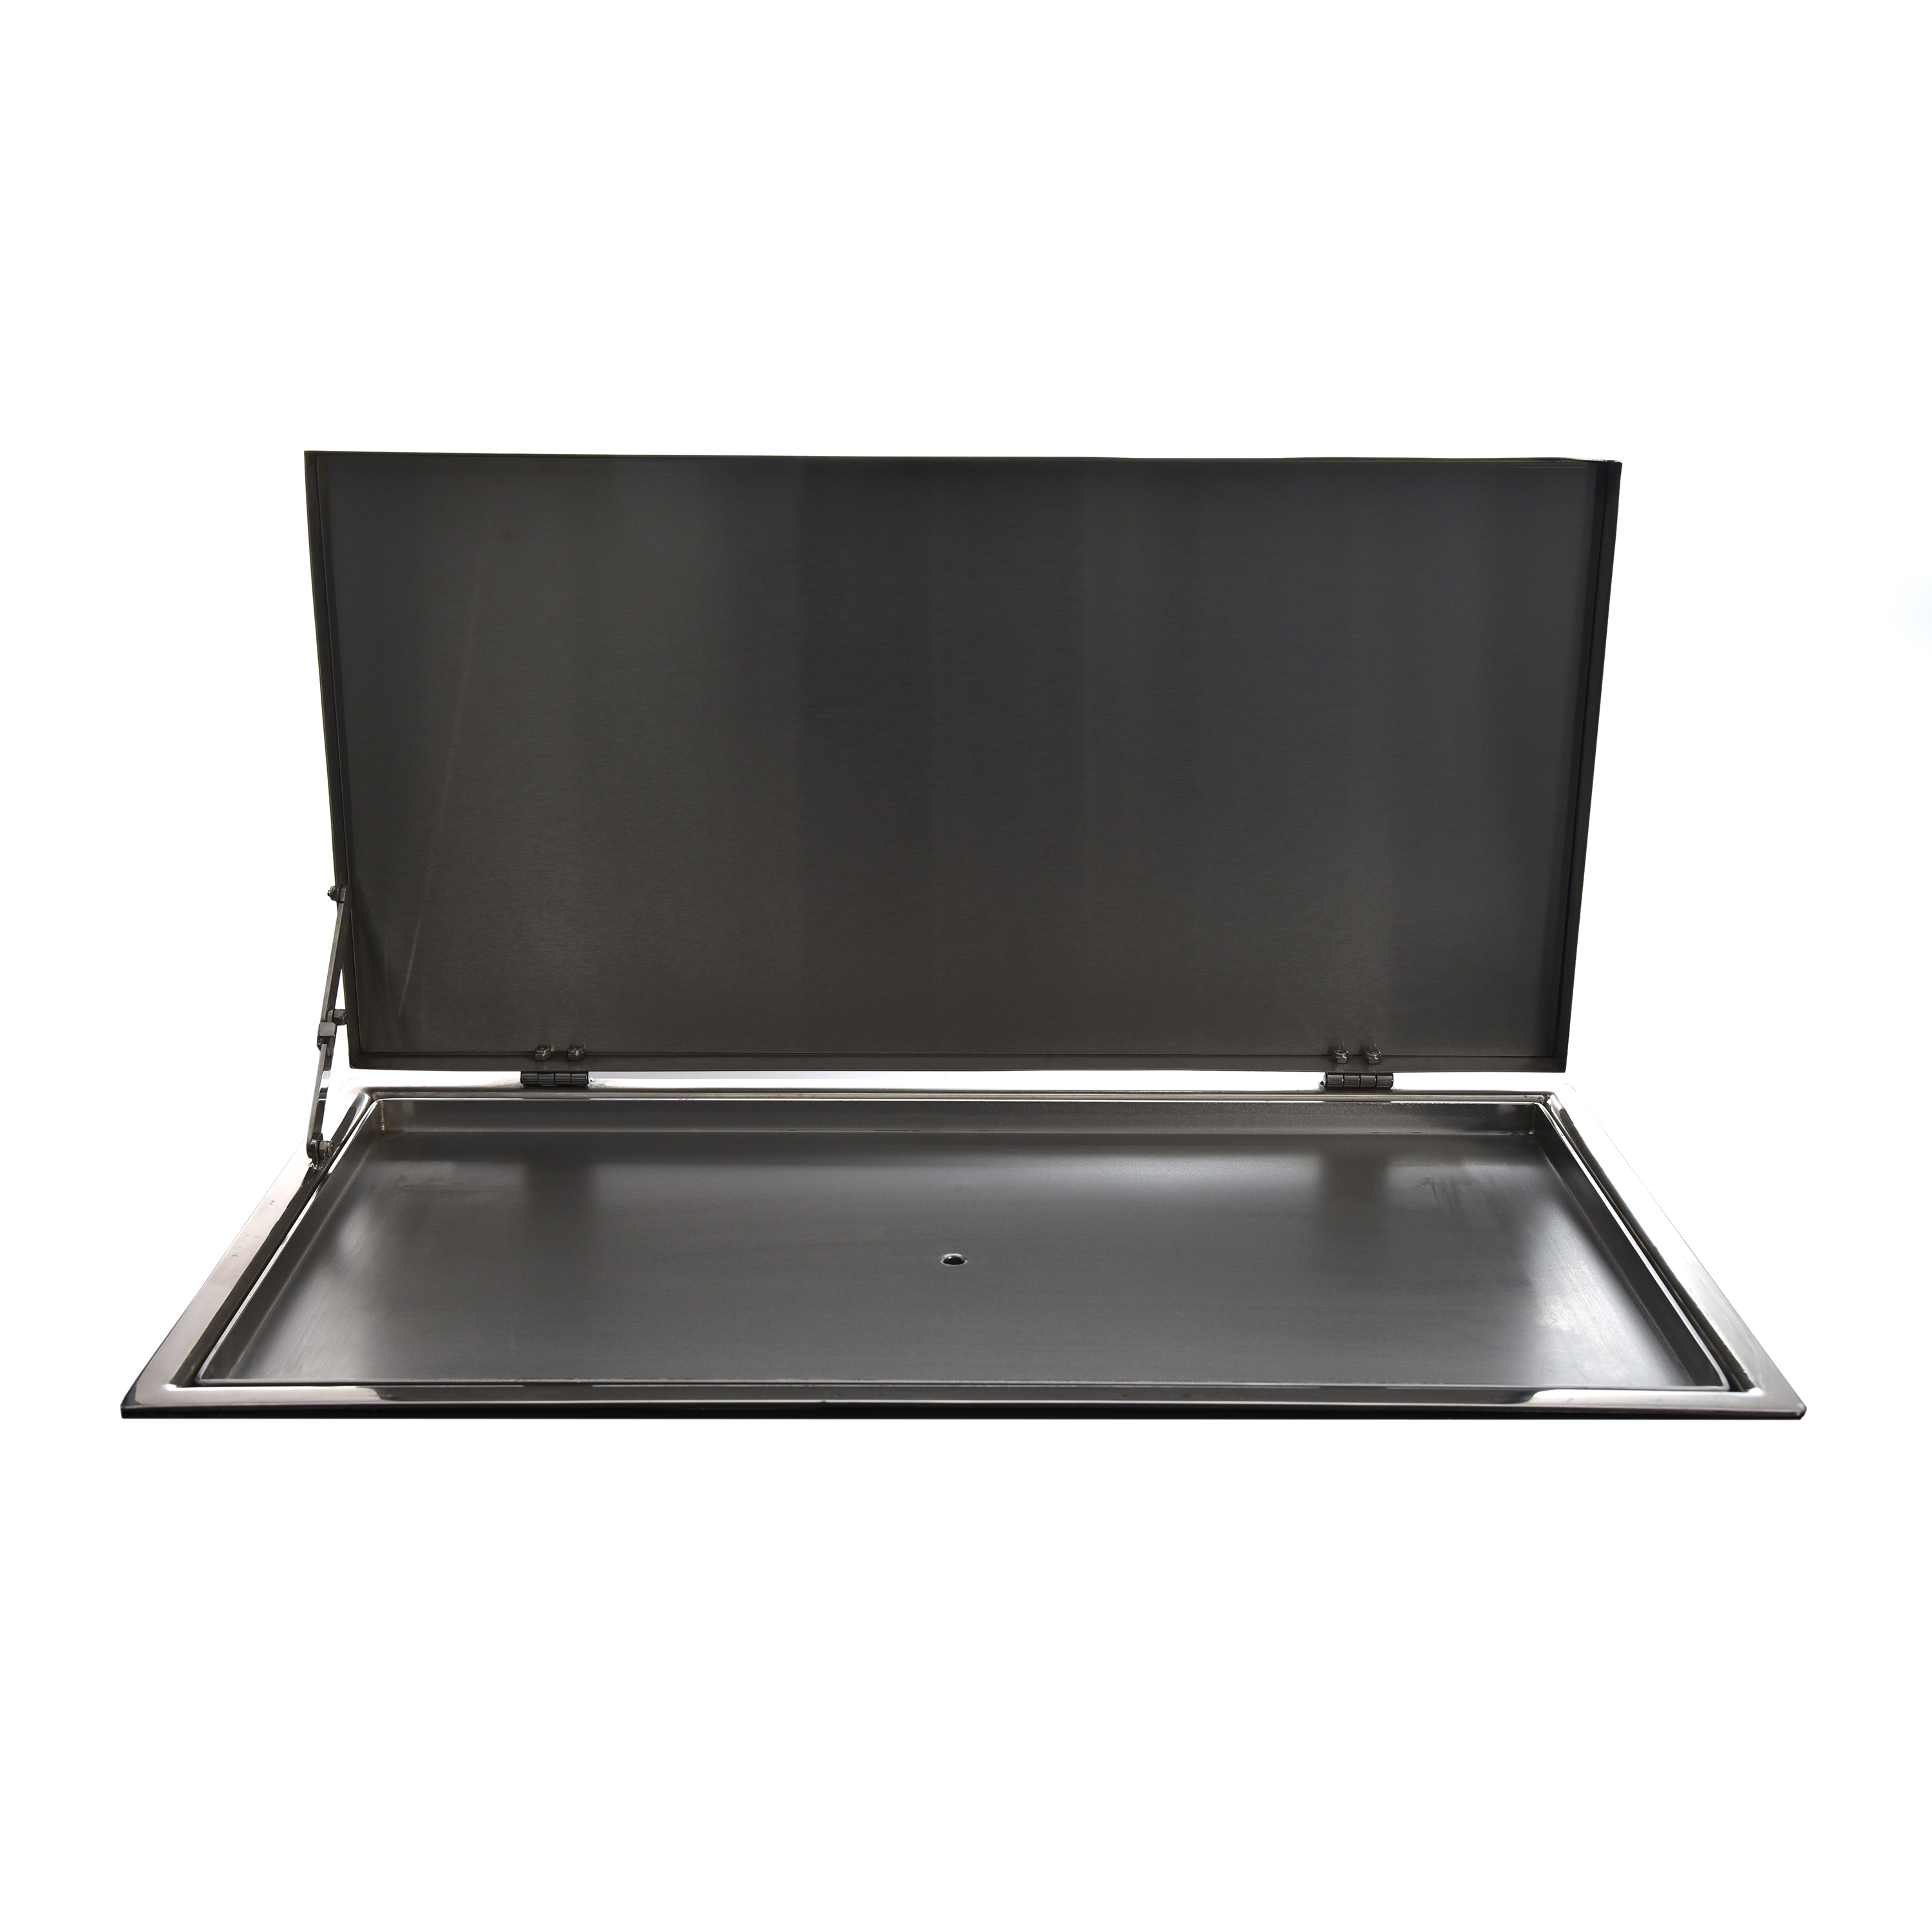 Deluxe Electric Flush Mount BBQ